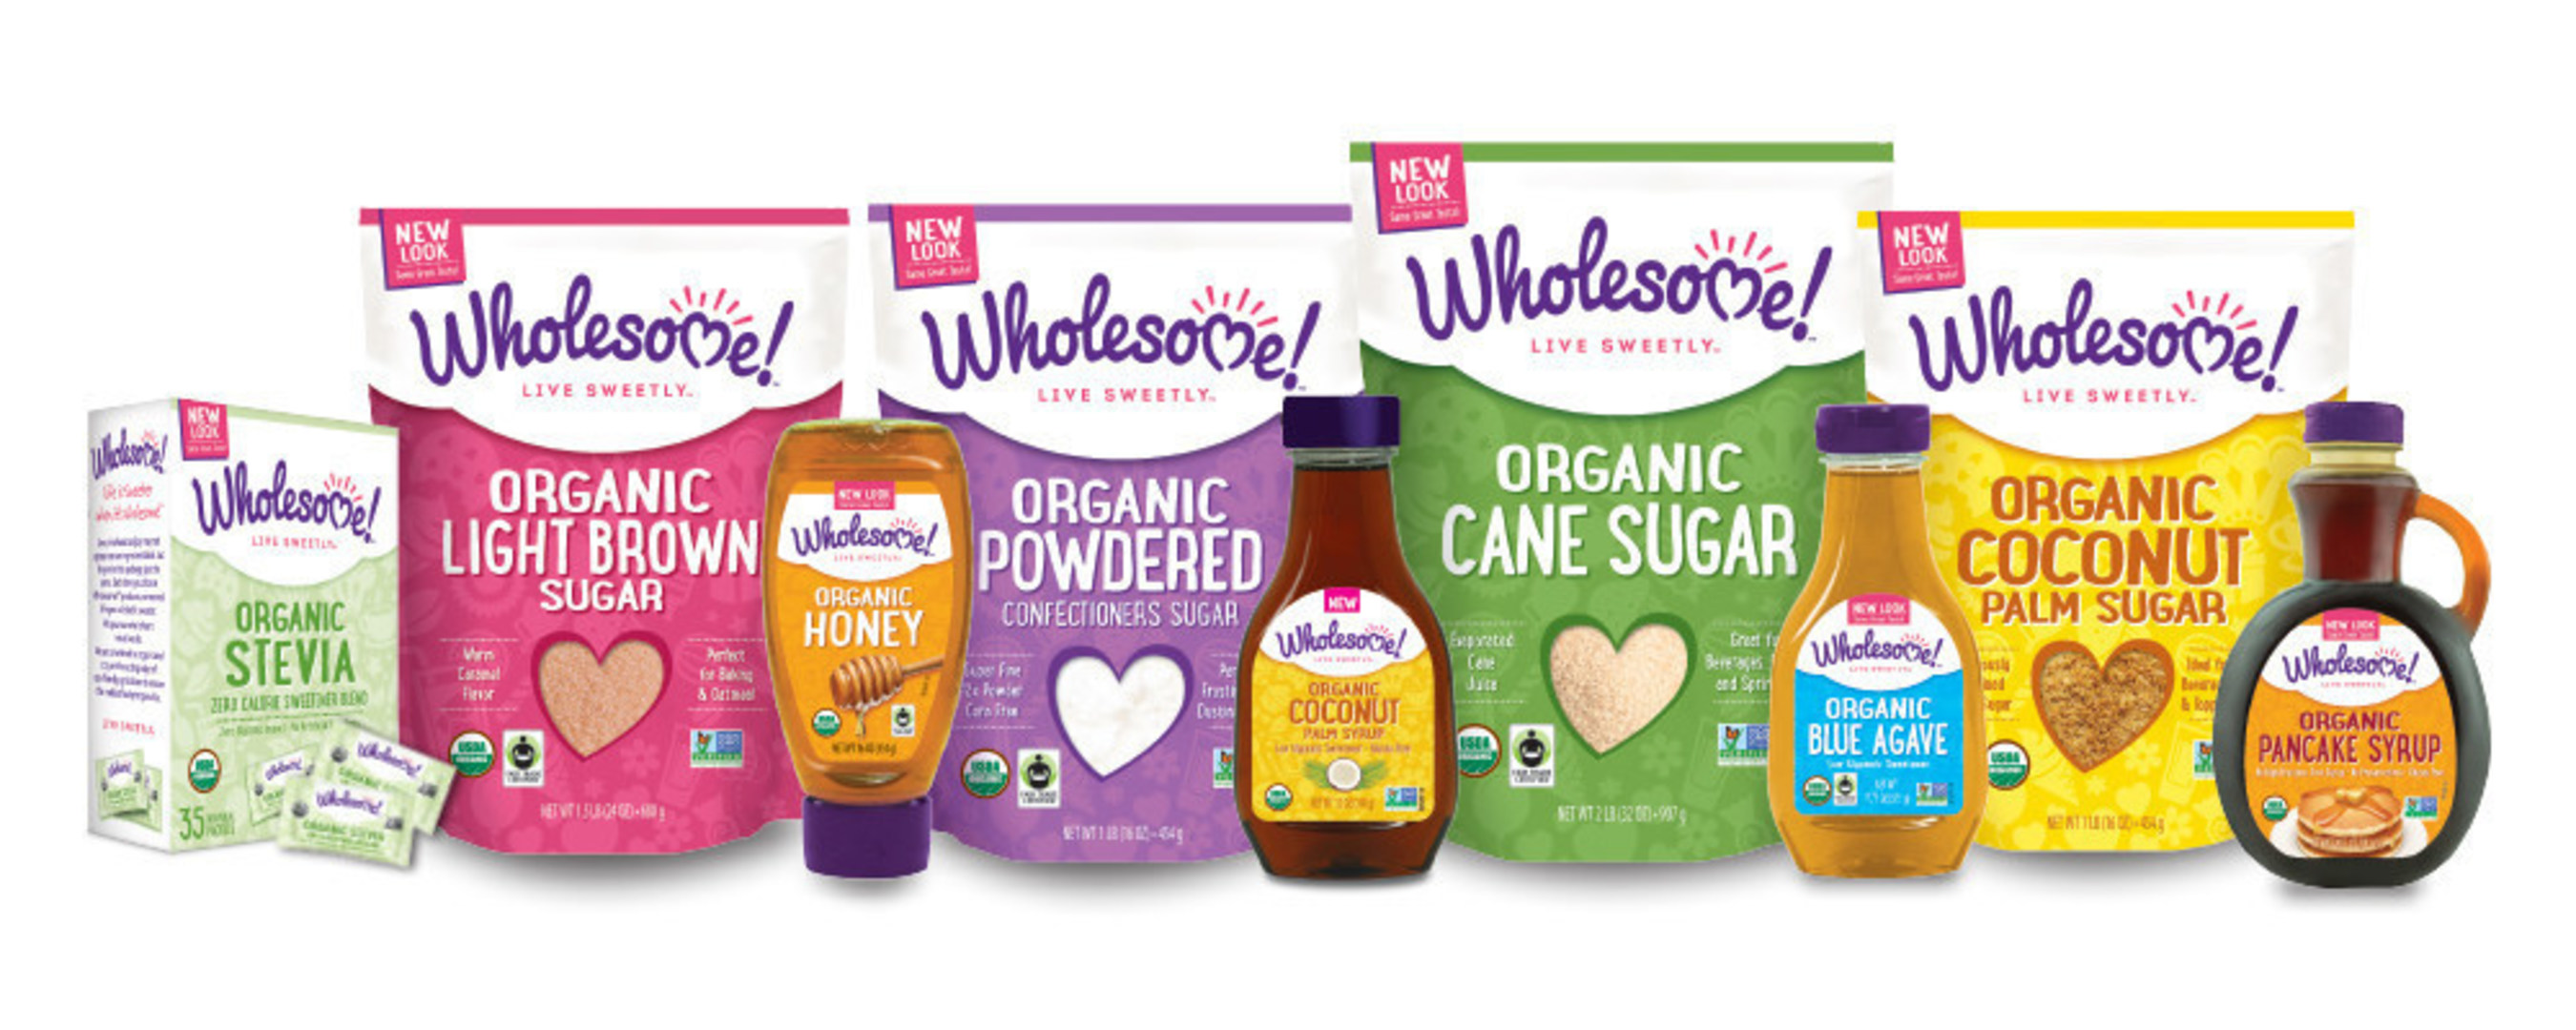 Wholesome Sweeteners, Inc.(R) is the owner of Wholesome!(TM), the largest supplier of Fair Trade, Organic and Non-GMO sugars, agaves, stevia, molasses and honey in North America. Wholesome Sweeteners, Inc. has been a longstanding pioneer in the organic sugar and sweeteners category, currently offering more than 40 retail skus in the United States and Canada under the Wholesome! name brand. Today, Wholesome Sweeteners, Inc. acquired organic candy company, TruSweets. Its brands, Surf Sweets and...